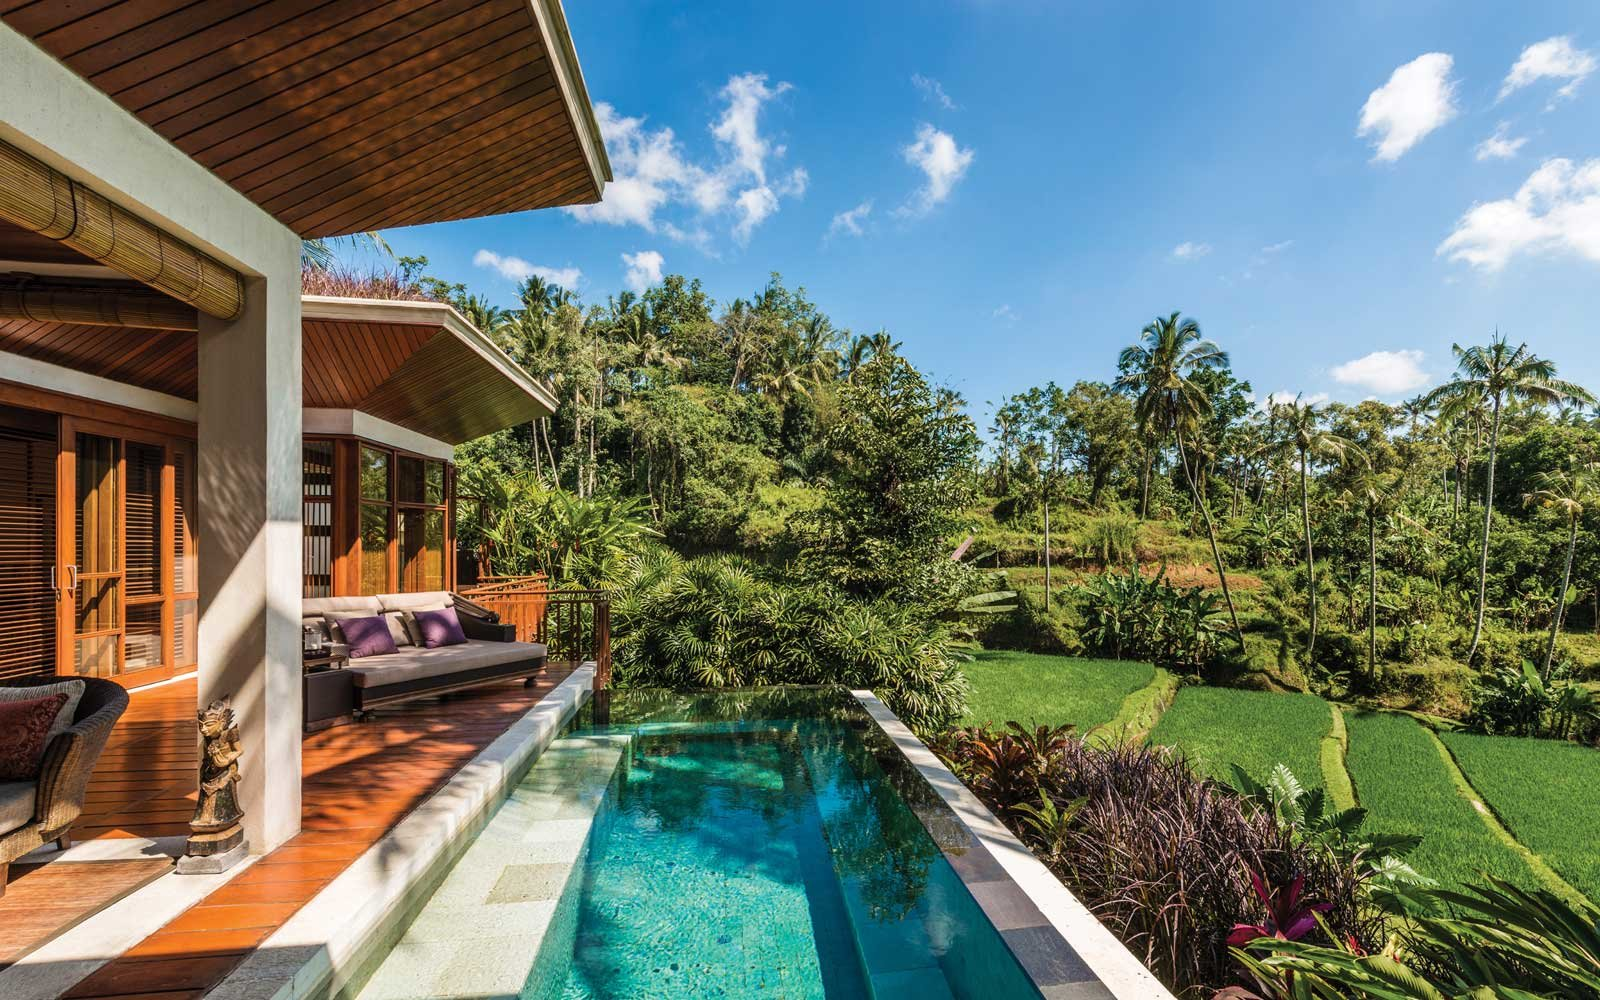 000 overall top hotels four seasons bali top100hotelswb18